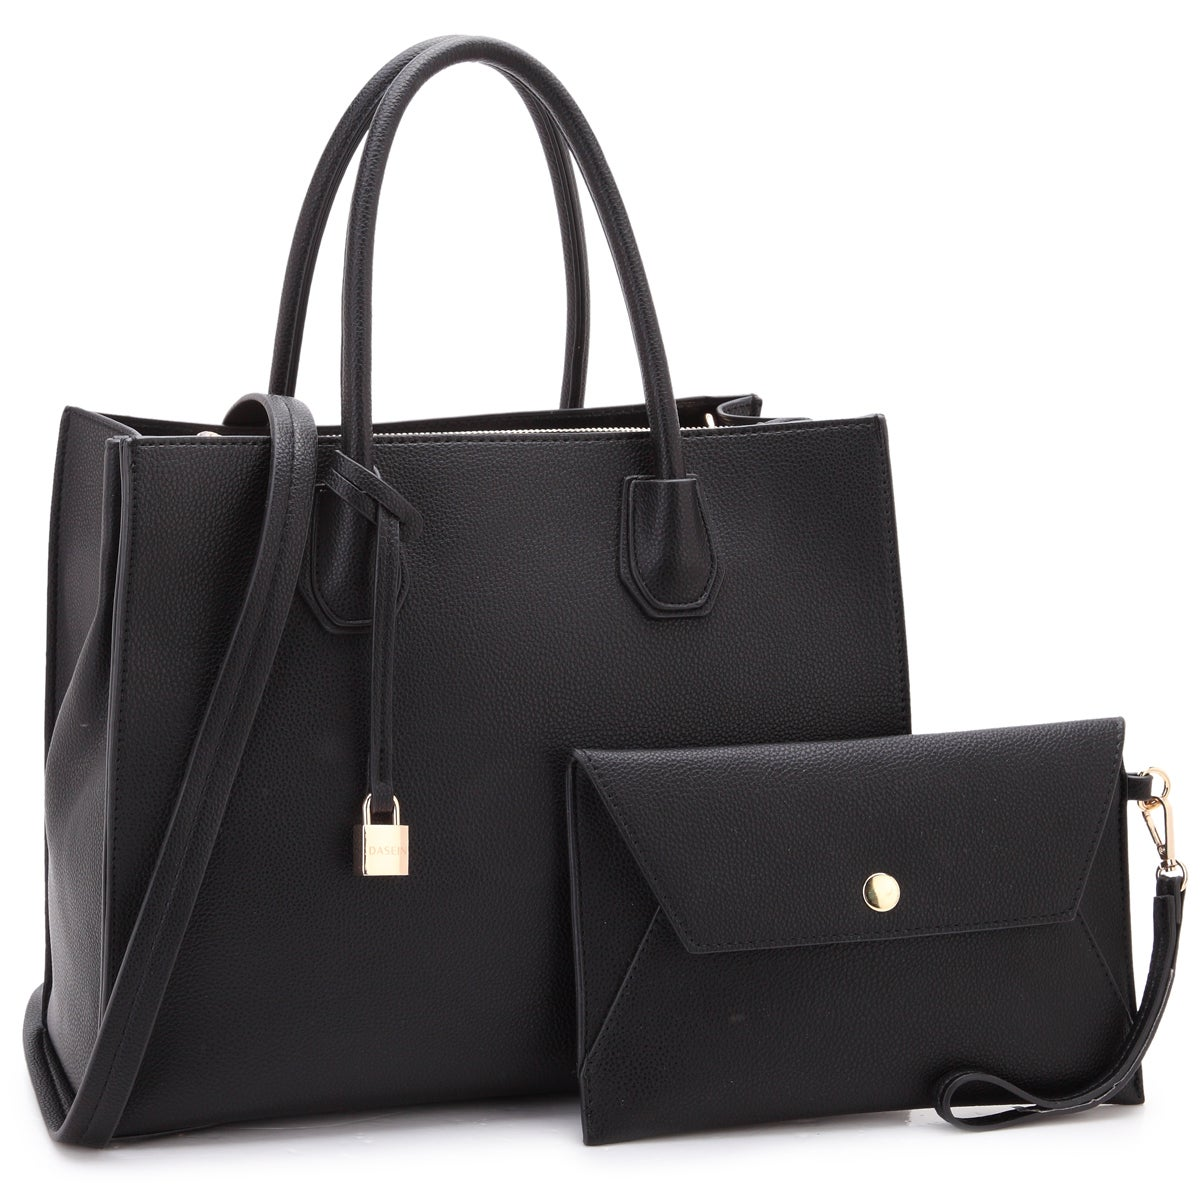 Black Handbags Our Best Clothing Shoes Deals Online At